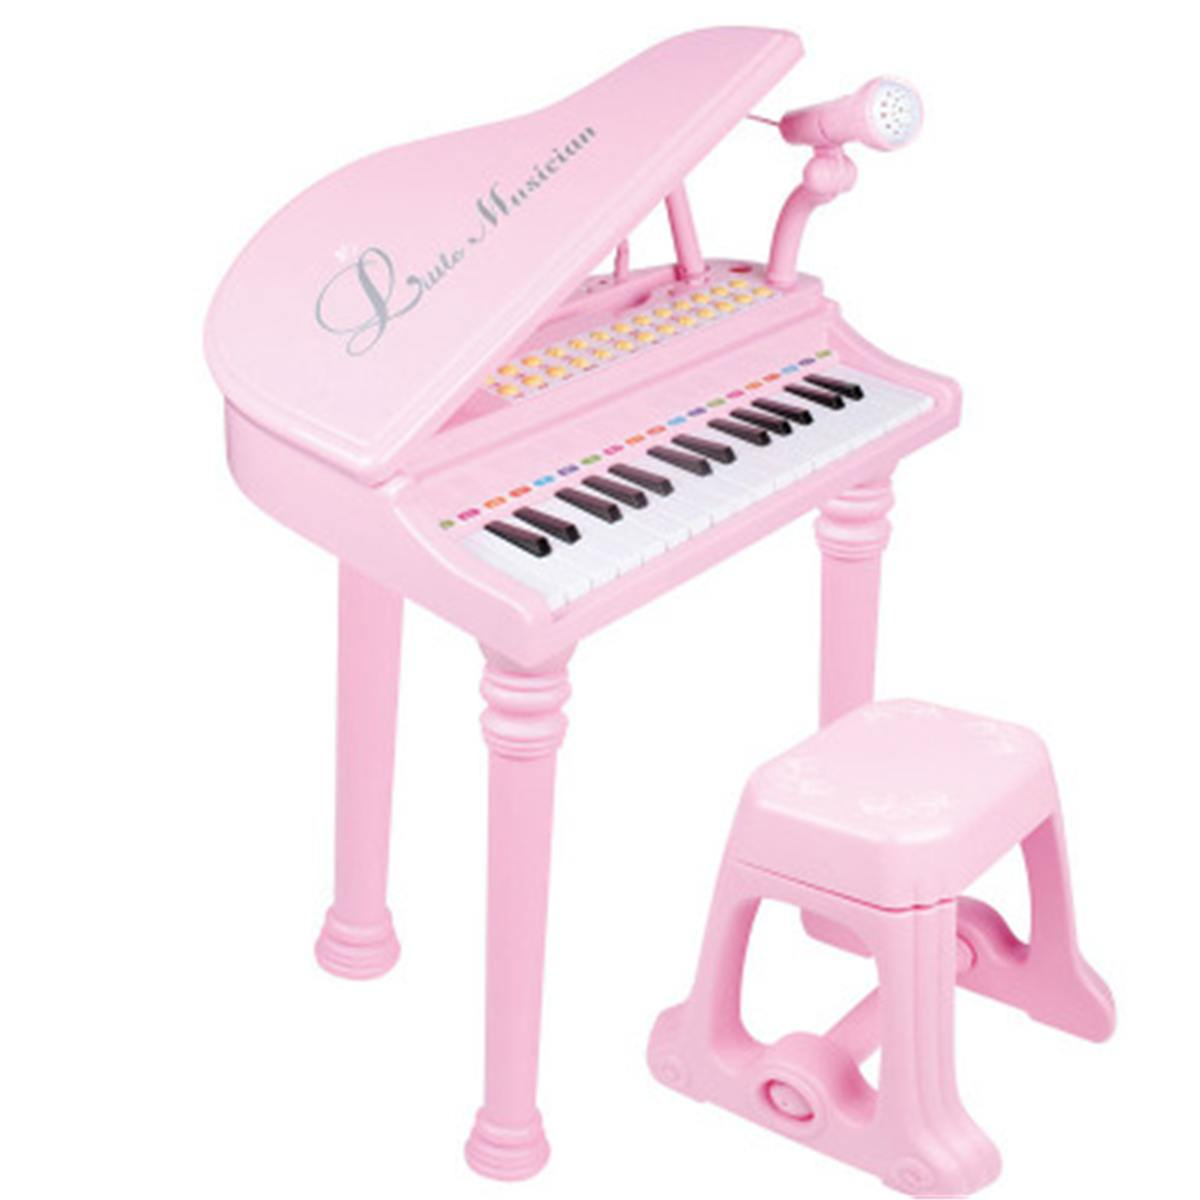 31 Keys Kids Piano Toys Electronic Keyboard Piano Light Microphone Learning Toys Musical Instrument Children Gift 3 Colors